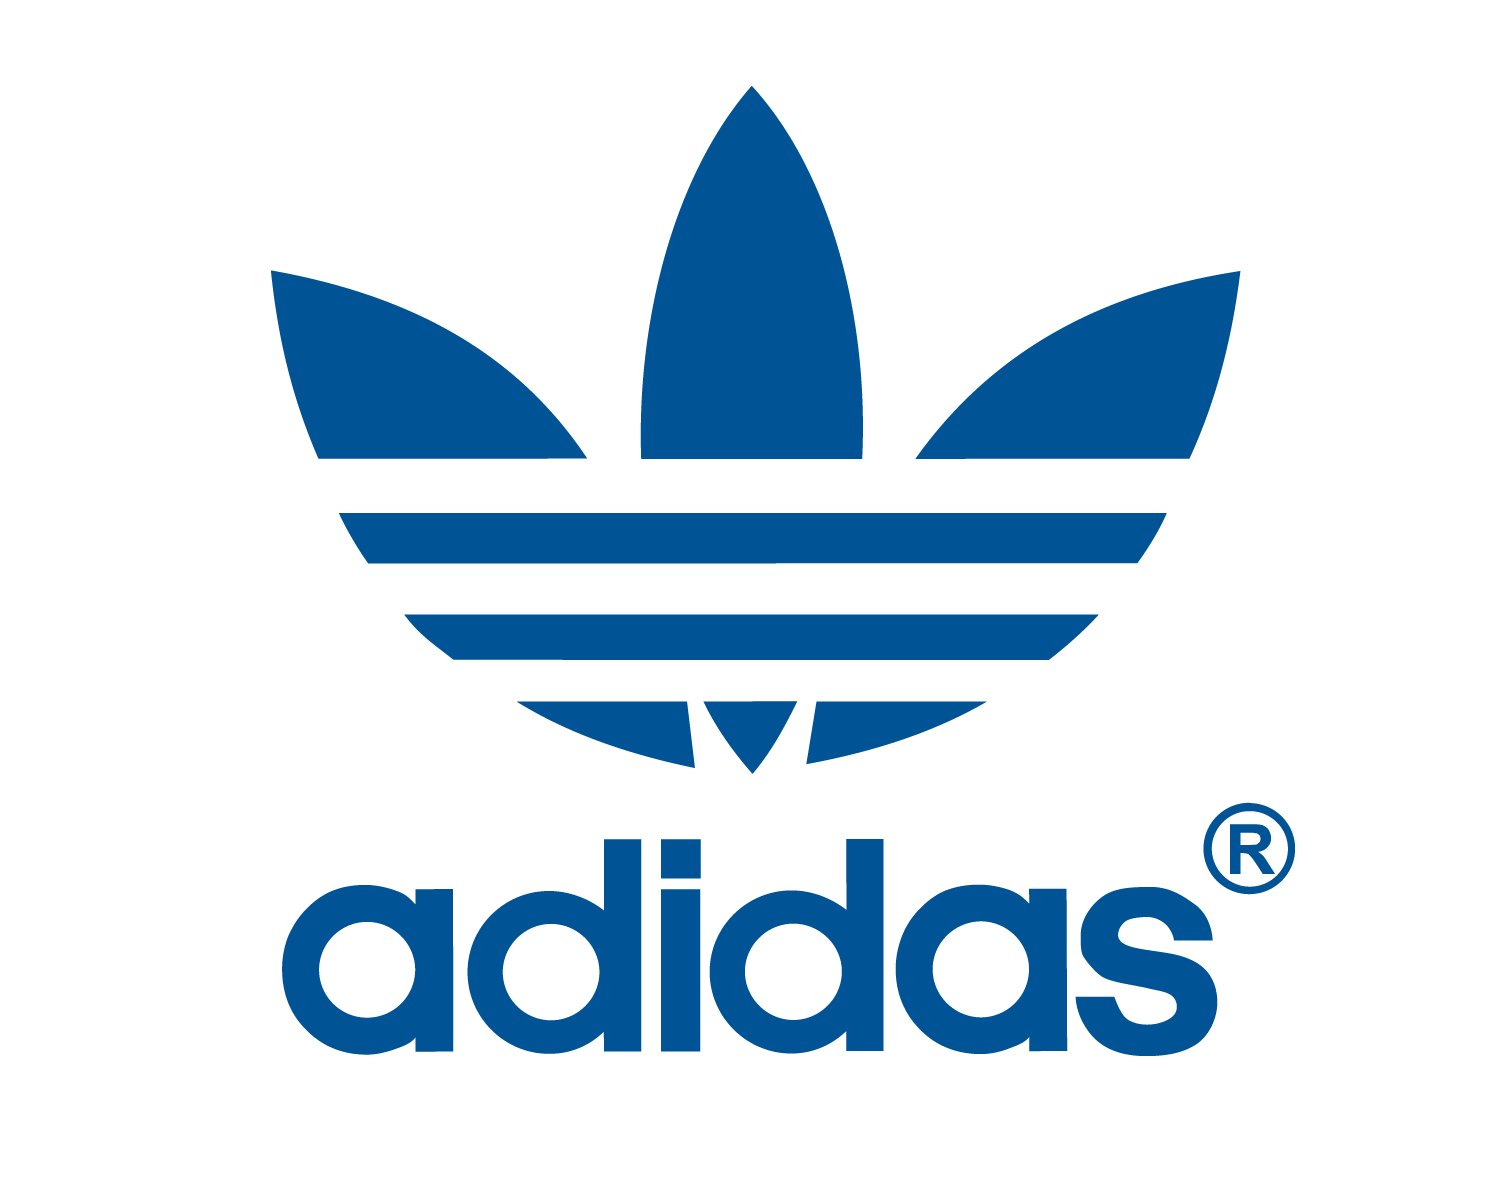 Adidas logo png. Transparent background famous logos